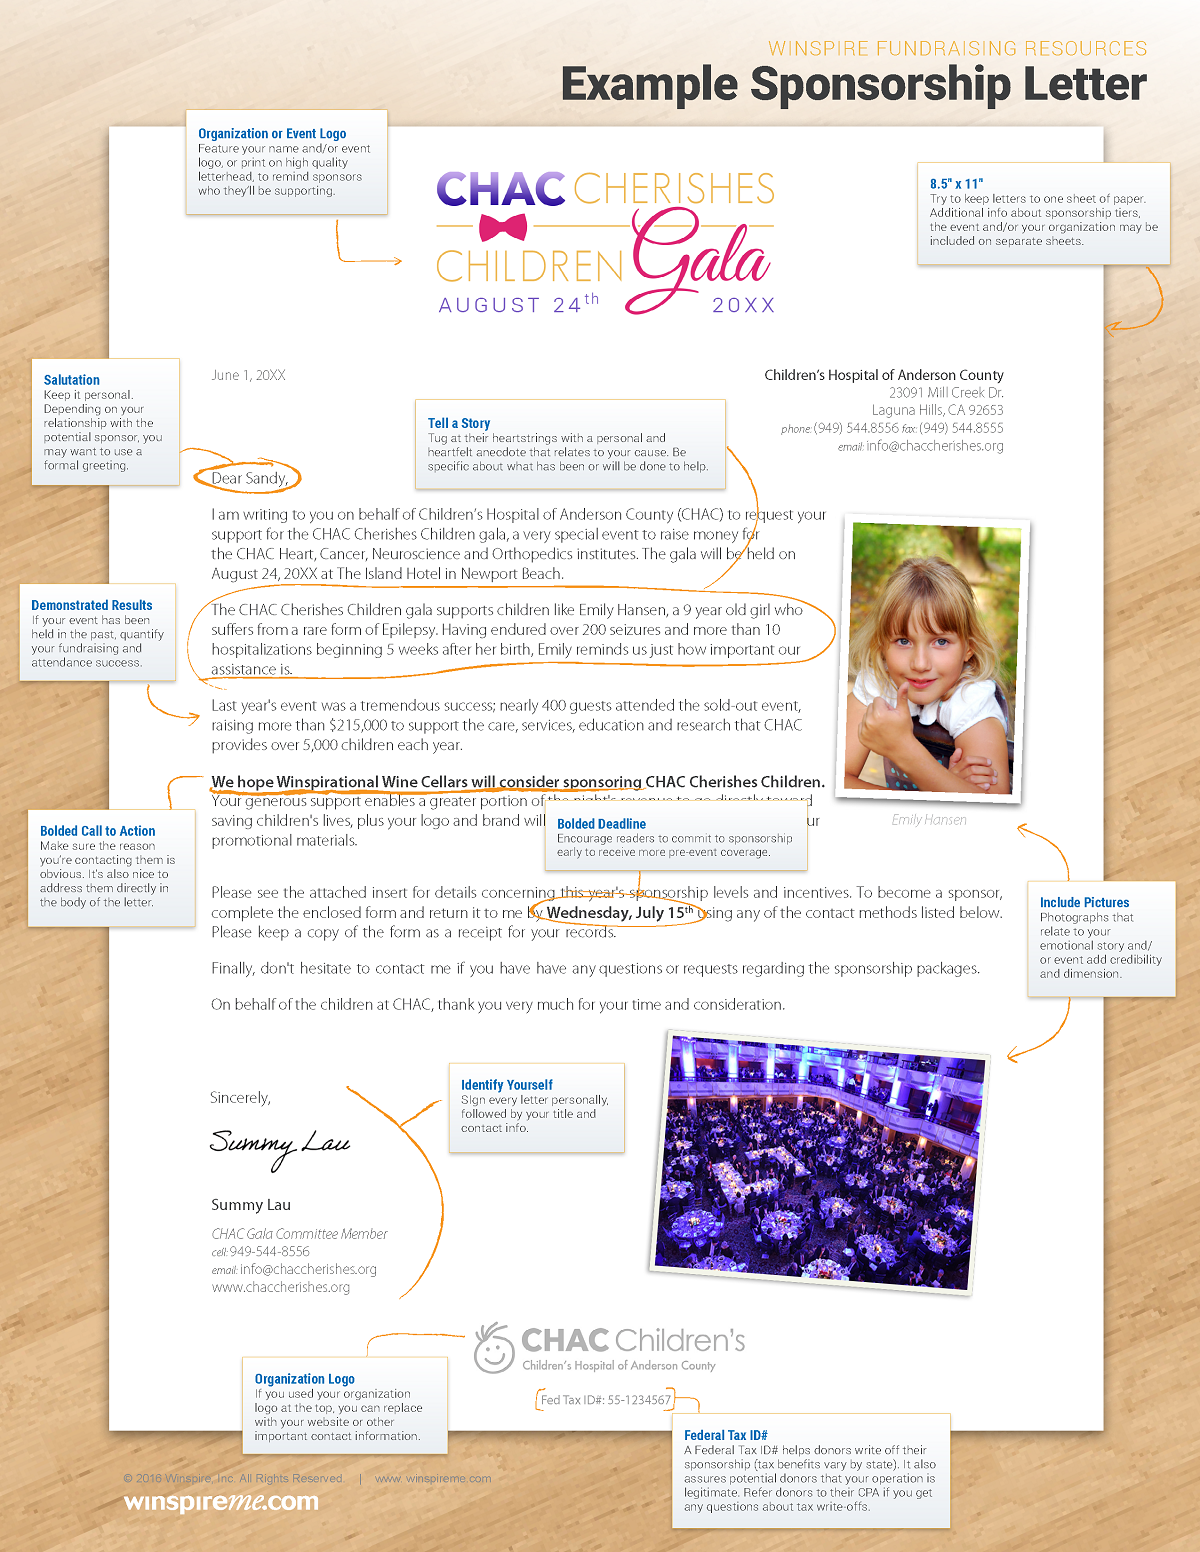 10 easy steps to effective sponsorship request letters free templates kit diagram sneak peek circle with pictureg spiritdancerdesigns Gallery